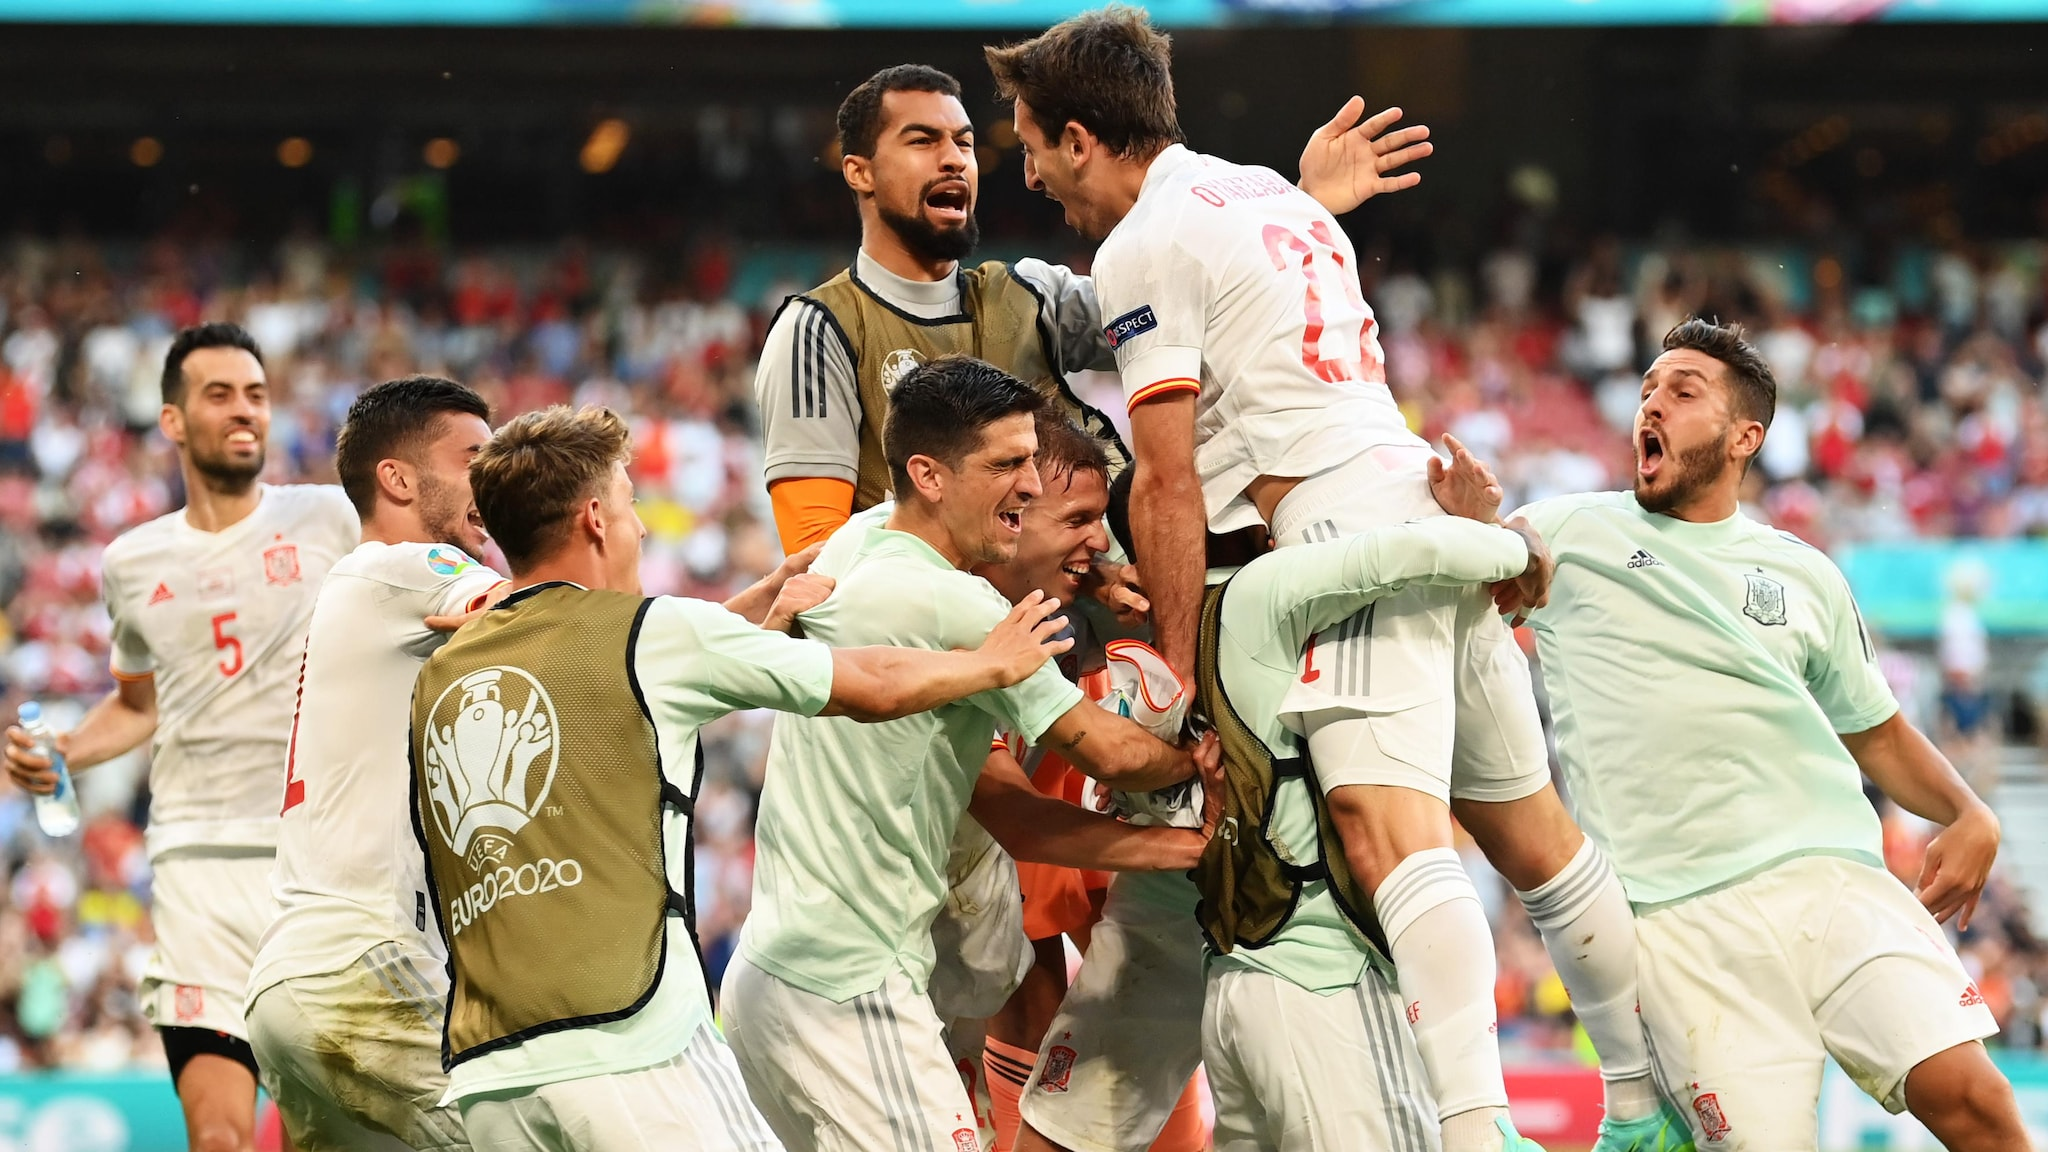 Best games of EURO 2020?